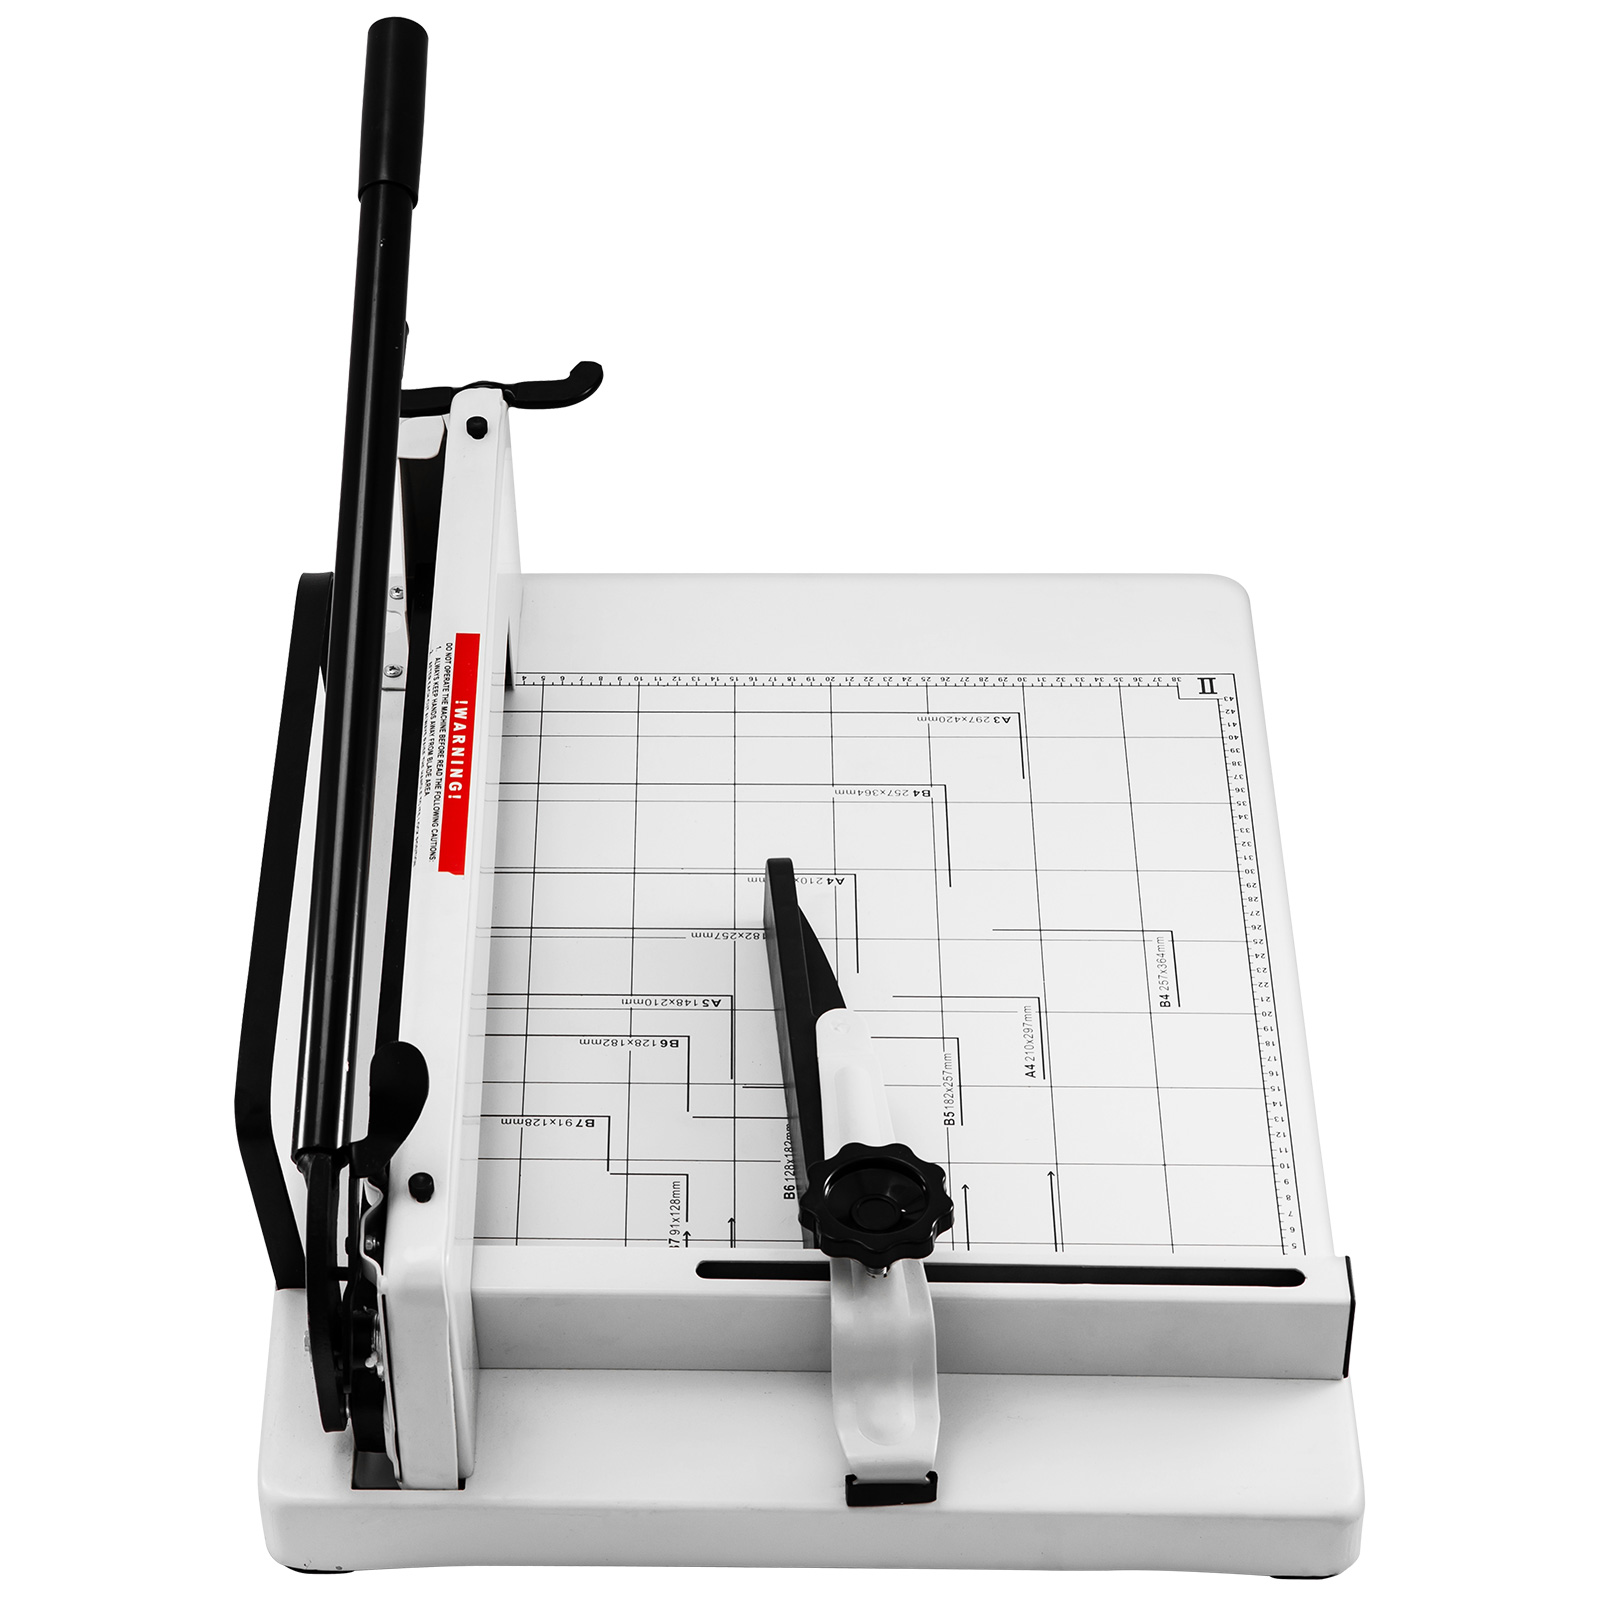 12-17-19-034-Width-Guillotine-Paper-Cutter-Stack-Paper-Guillotine-Trimmer thumbnail 20